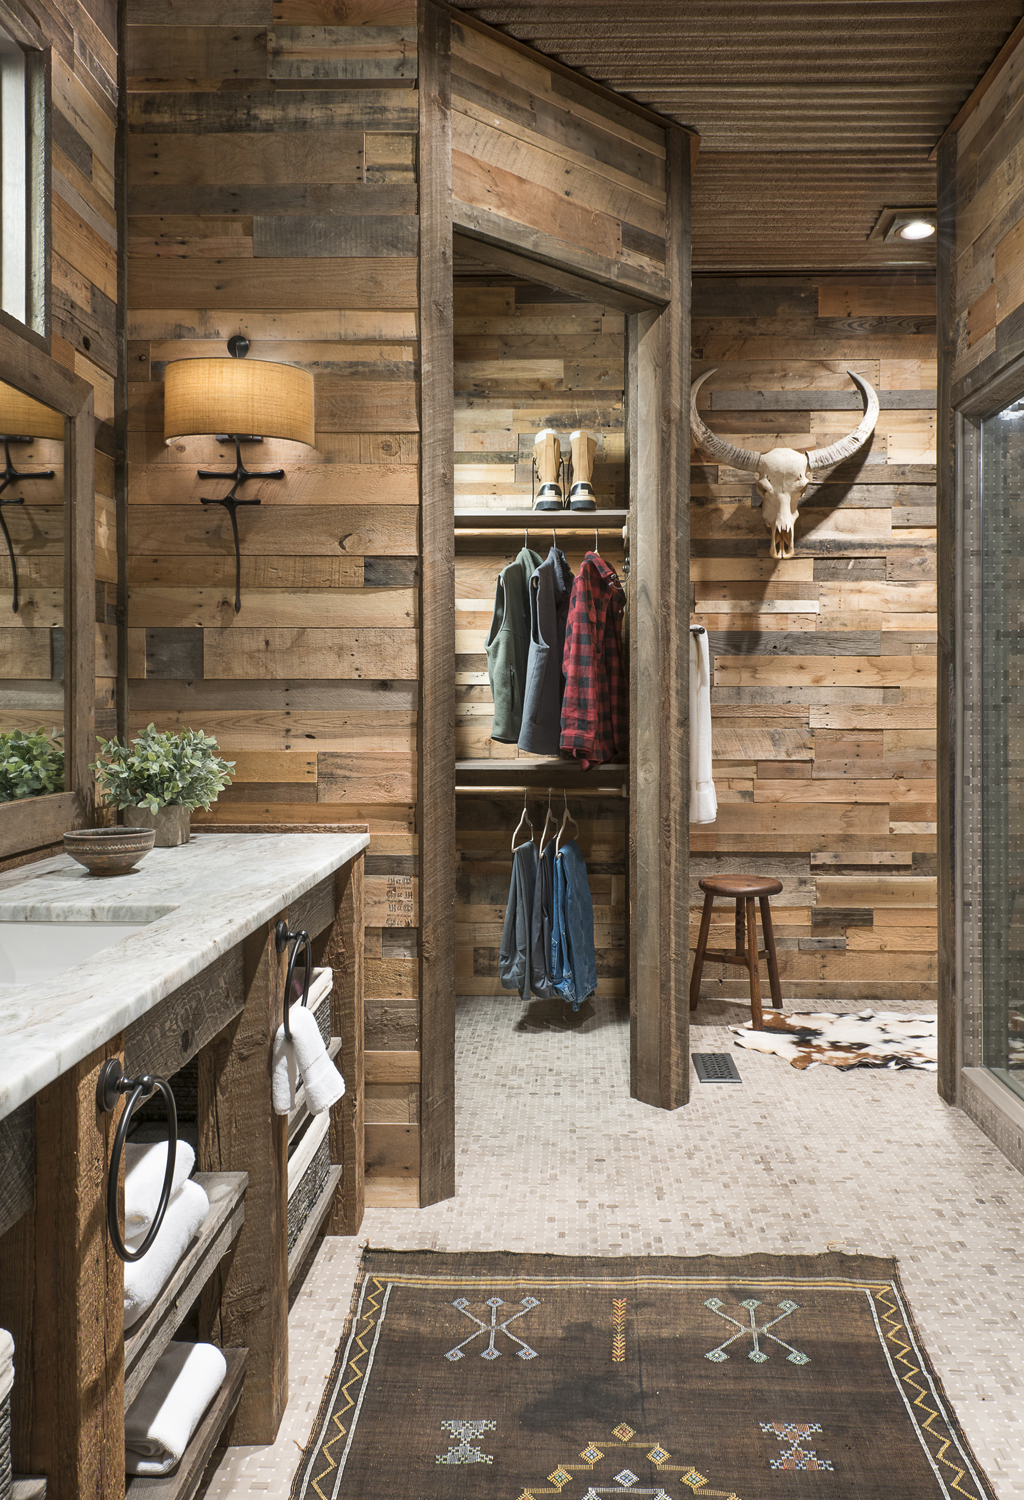 Easy Install Pre Fabricated Reclaimed Wood Wall Panels Sustainable Lumber Company